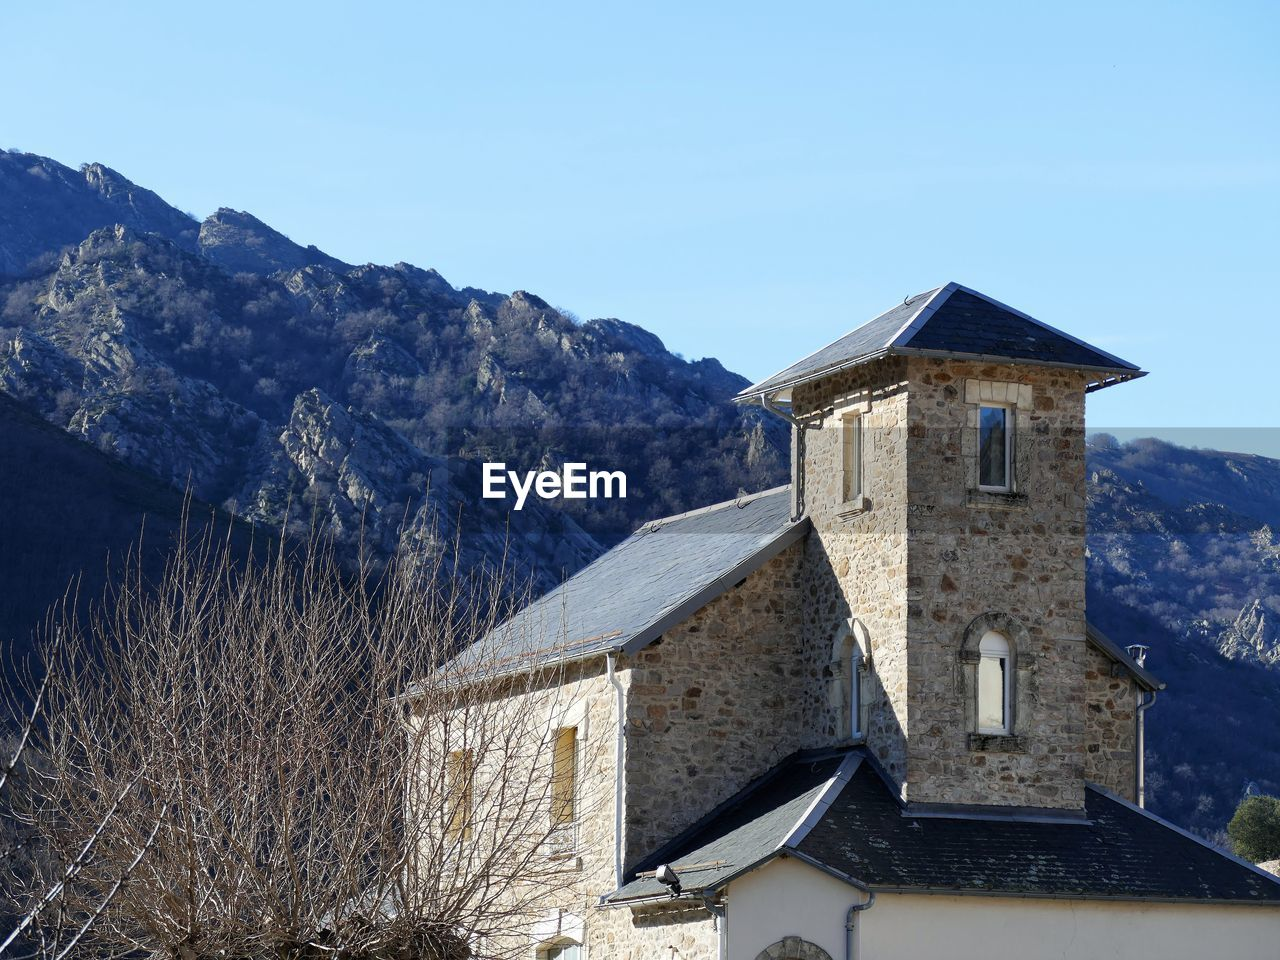 architecture, built structure, building exterior, building, mountain, sky, nature, house, no people, day, clear sky, mountain range, residential district, outdoors, tree, cold temperature, religion, place of worship, blue, low angle view